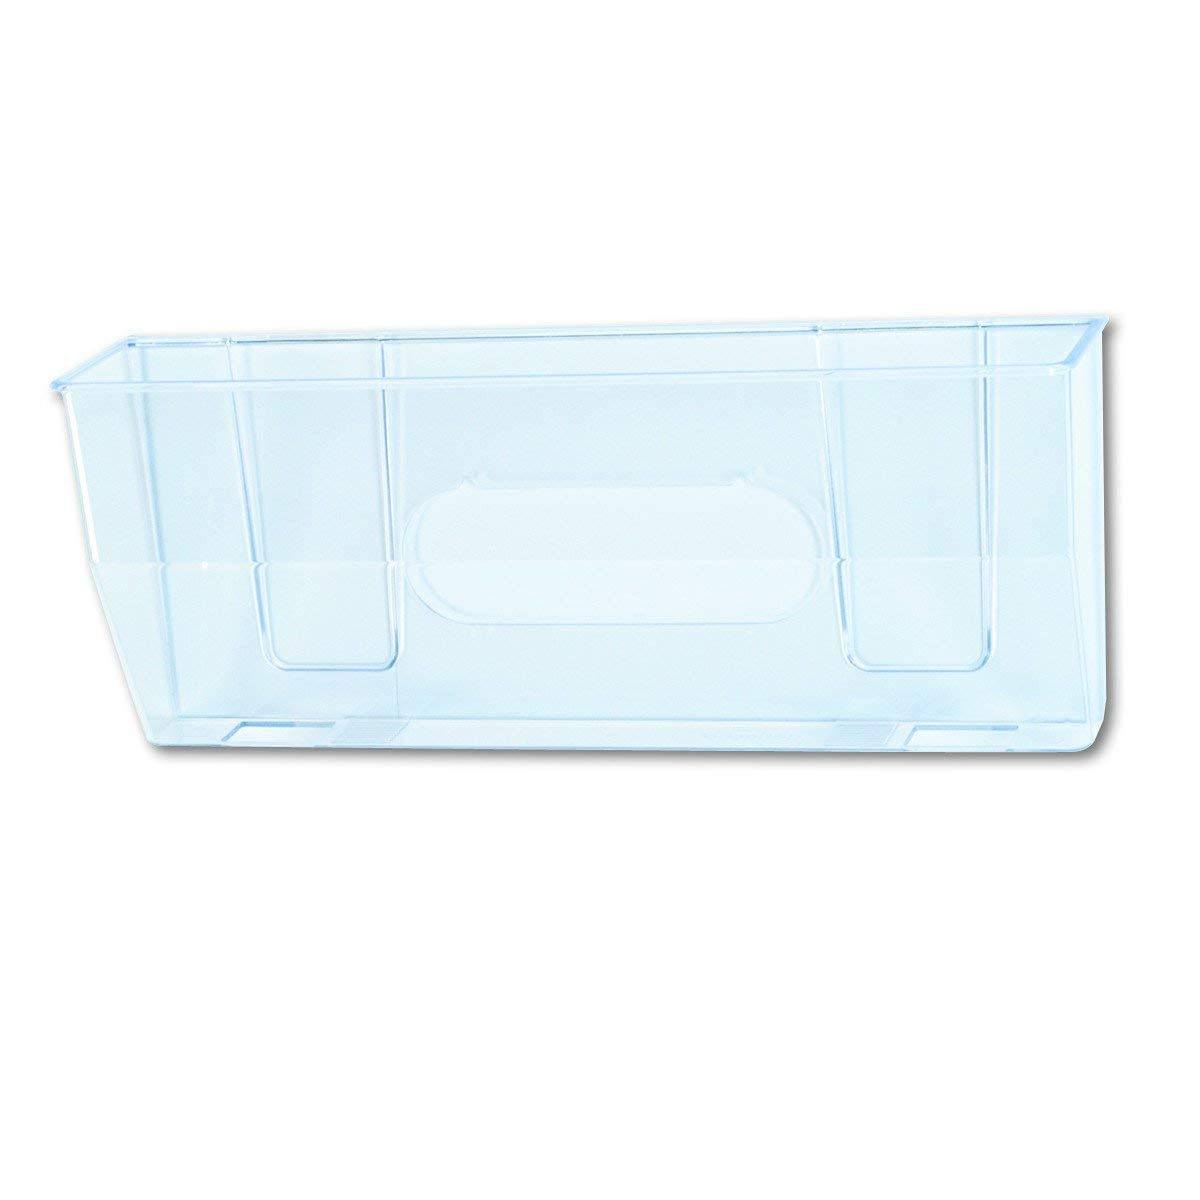 50101 Docupocket Oversized Magnetic Wall File Pocket, 15w x 3D x 6-3/8h, Clear (2 Pack) by DEFLECT-O